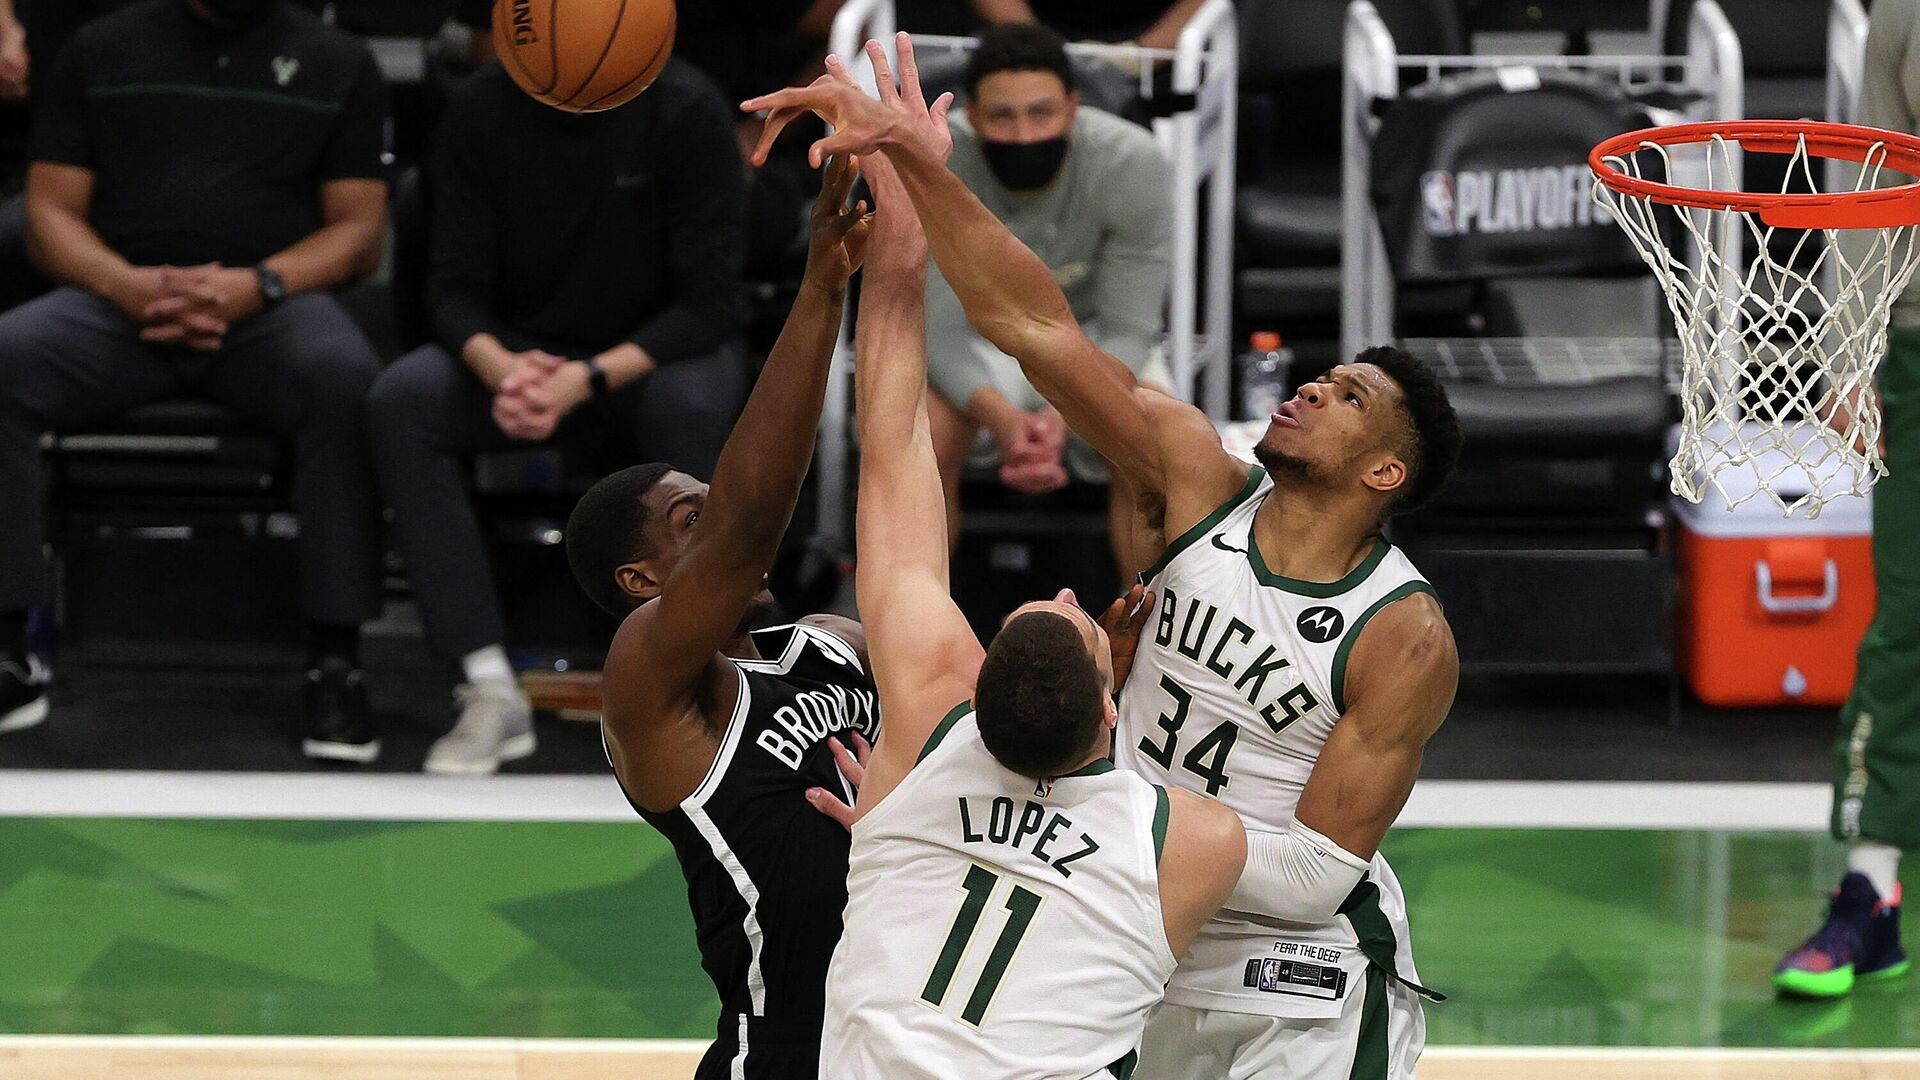 MILWAUKEE, WISCONSIN - JUNE 13: Giannis Antetokounmpo #34 of the Milwaukee Bucks blocks a shot by Reggie Perry #0 of the Brooklyn Nets during the second half of Game Four of the Eastern Conference second round playoff series at the Fiserv Forum on June 13, 2021 in Milwaukee, Wisconsin. NOTE TO USER: User expressly acknowledges and agrees that, by downloading and or using this photograph, User is consenting to the terms and conditions of the Getty Images License Agreement.   Stacy Revere/Getty Images/AFP (Photo by Stacy Revere / GETTY IMAGES NORTH AMERICA / Getty Images via AFP) - РИА Новости, 1920, 14.06.2021